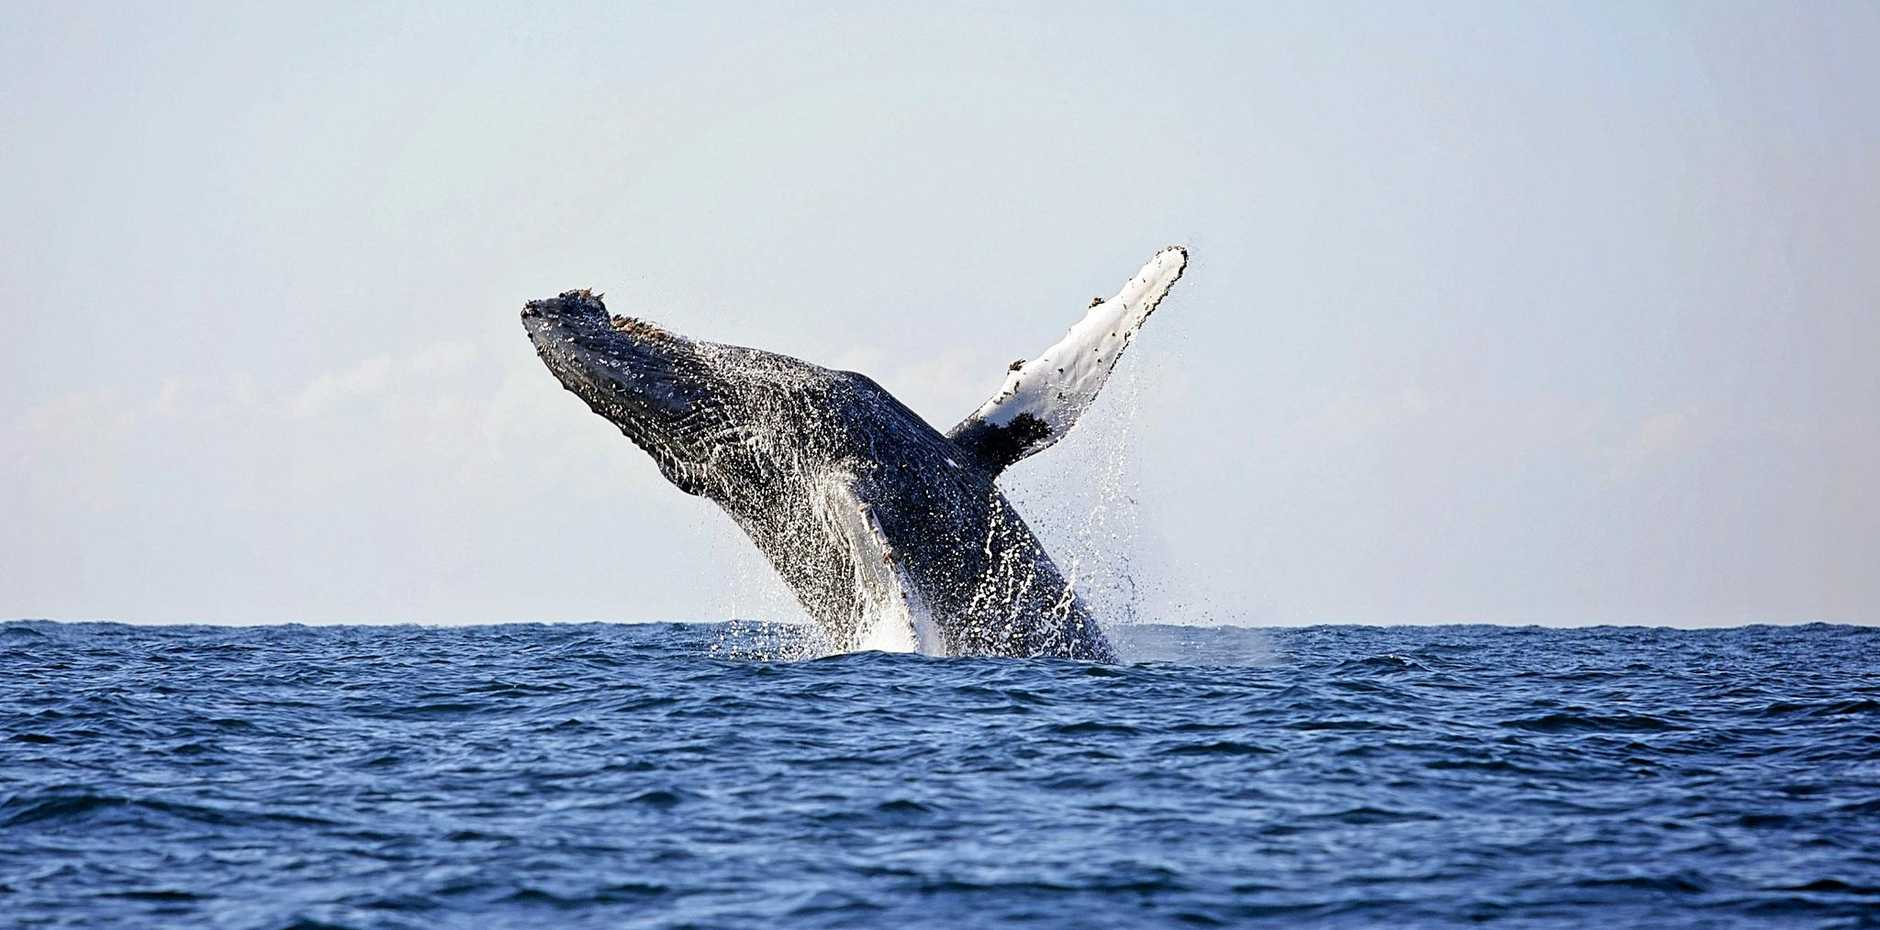 Whale breaching off Coffs Harbour.